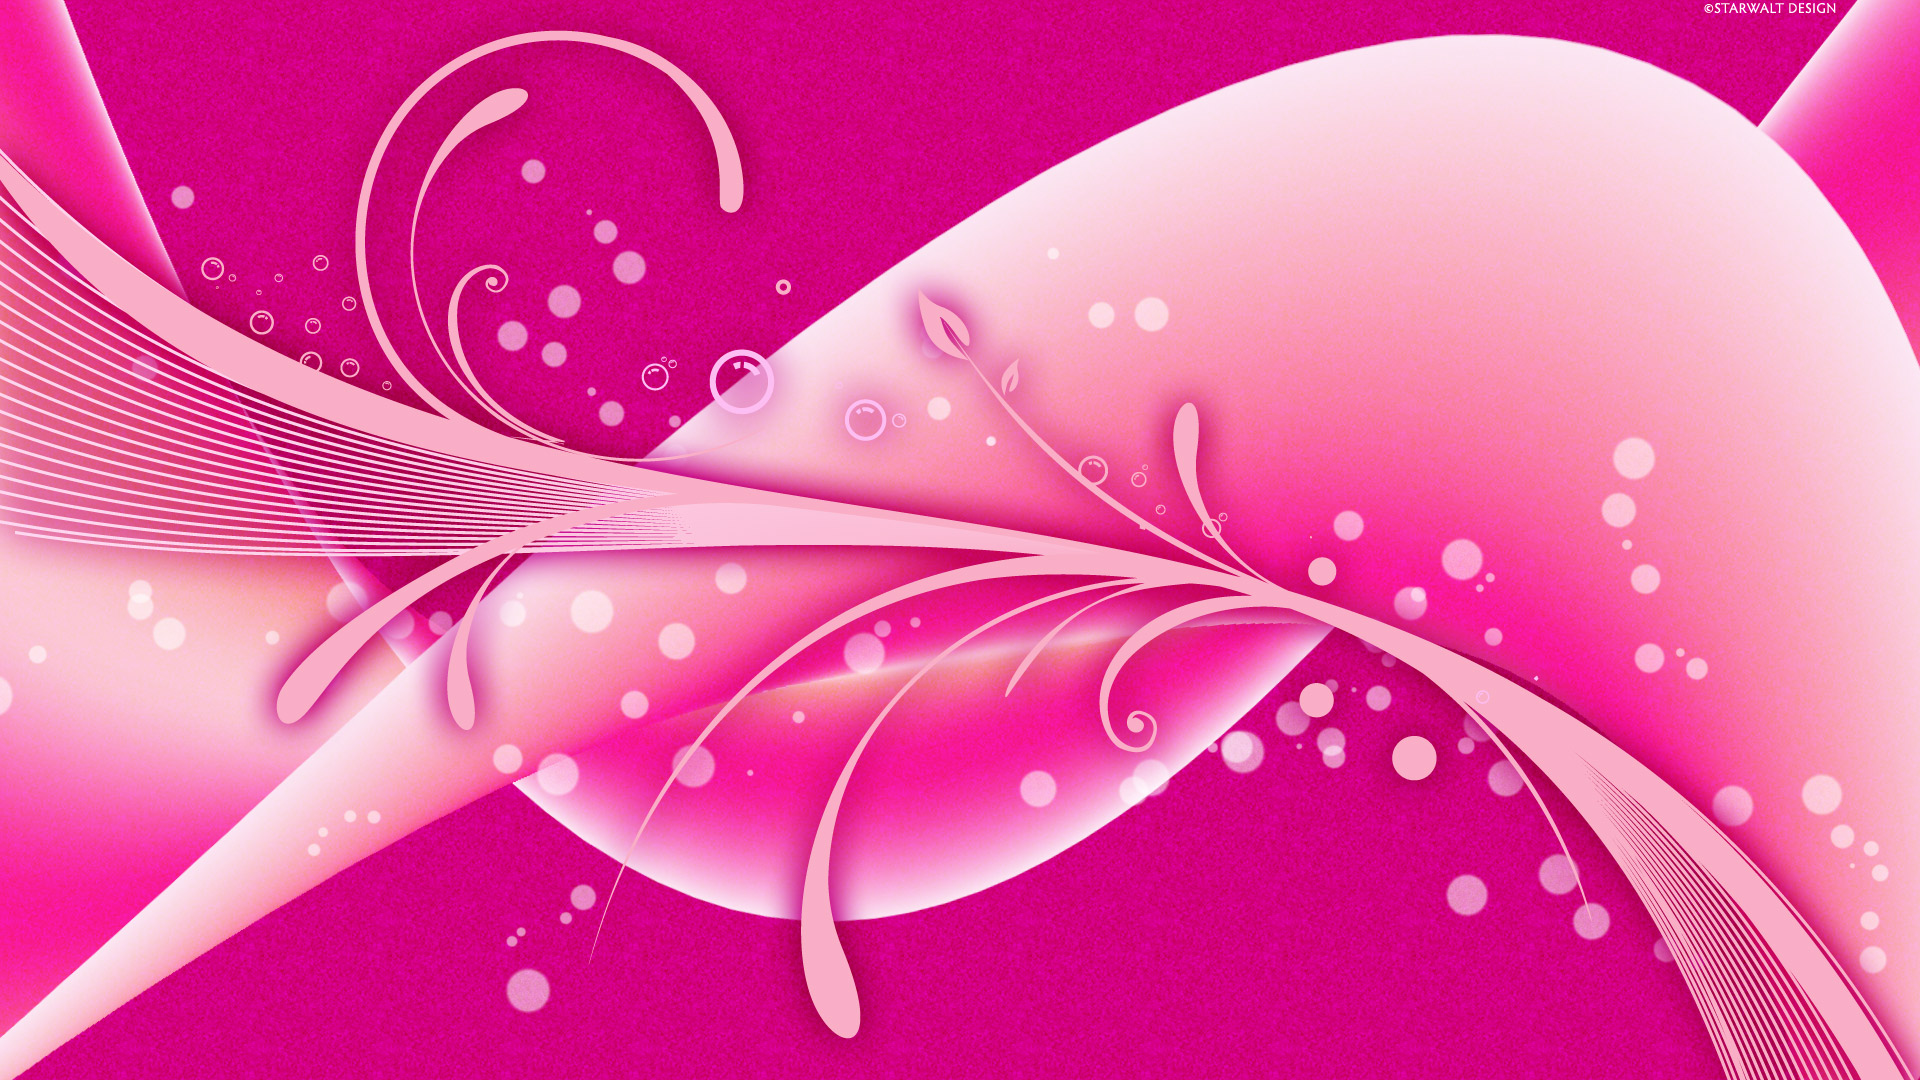 Hd wallpaper messi - Pink Cute Wallpaper Wallpapersafari